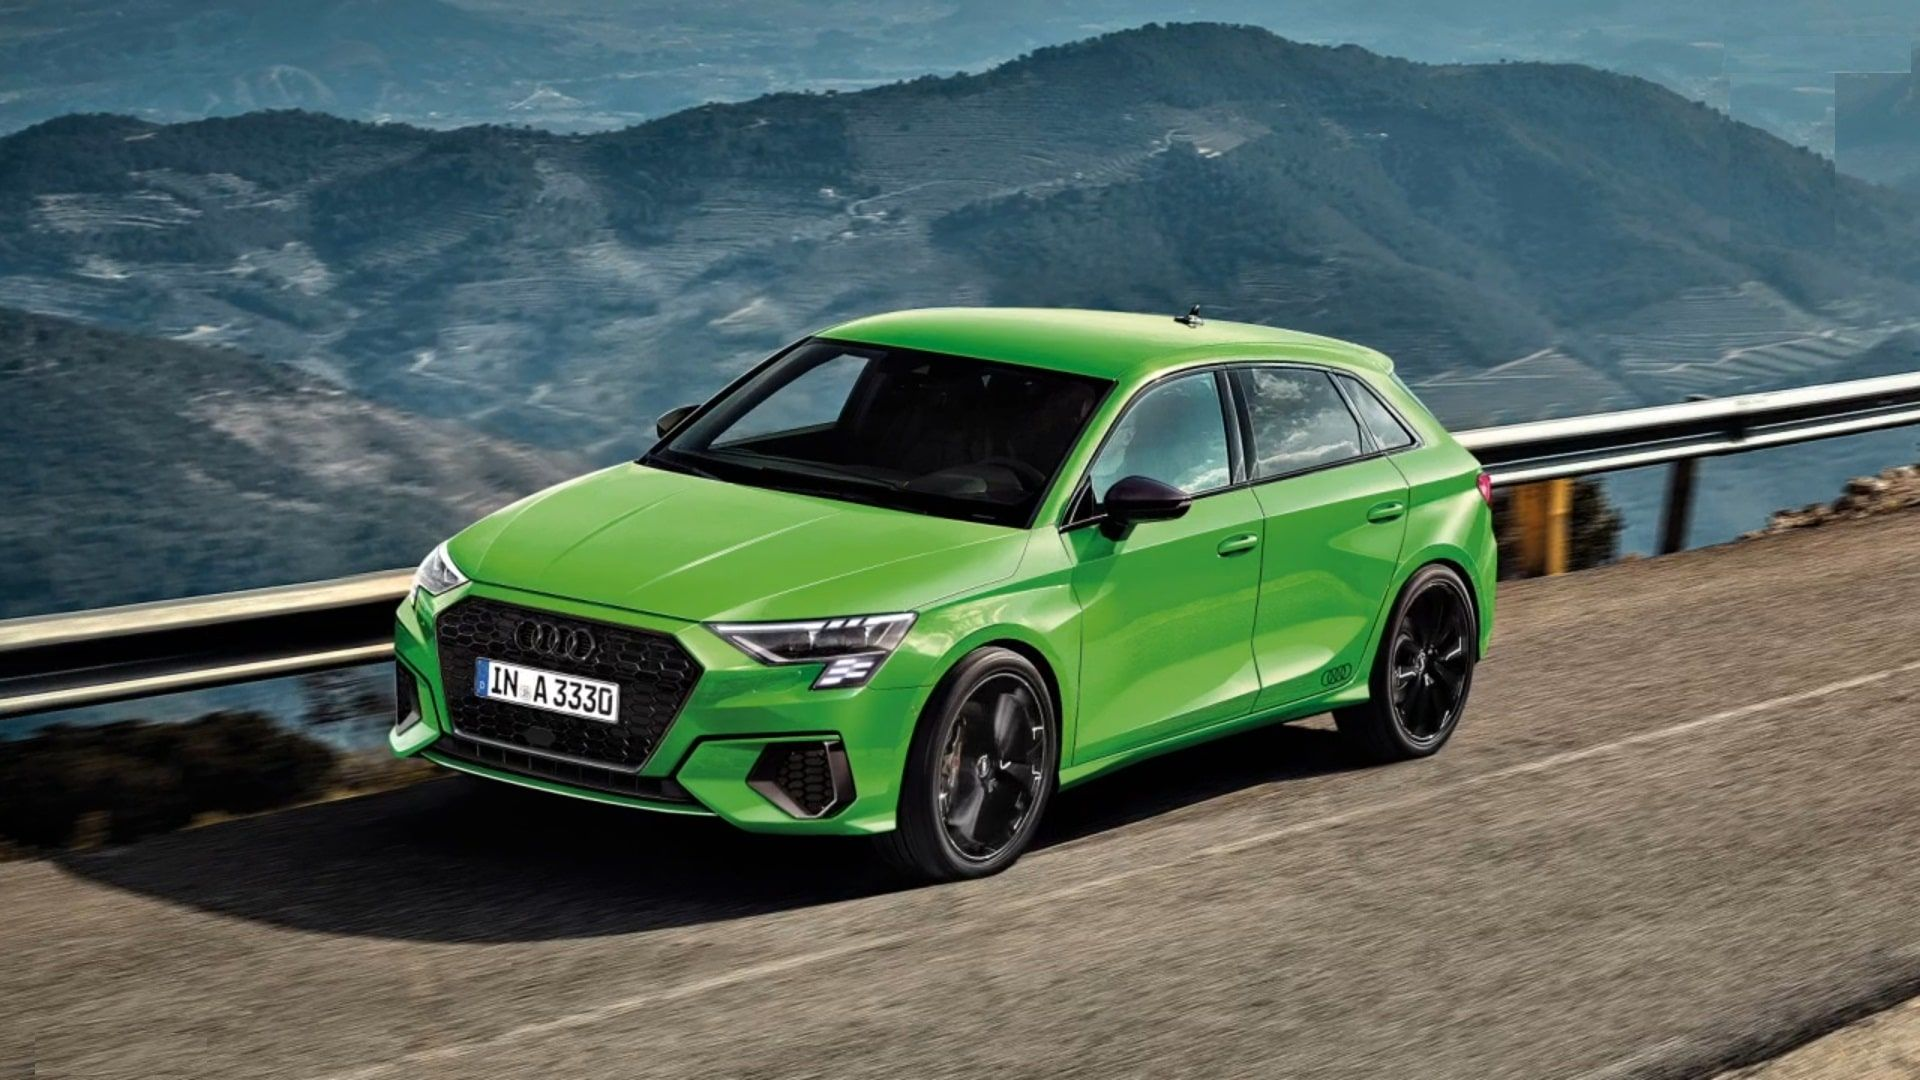 Awesome Dimensioni Nuova Audi A3 Sportback 2020 And